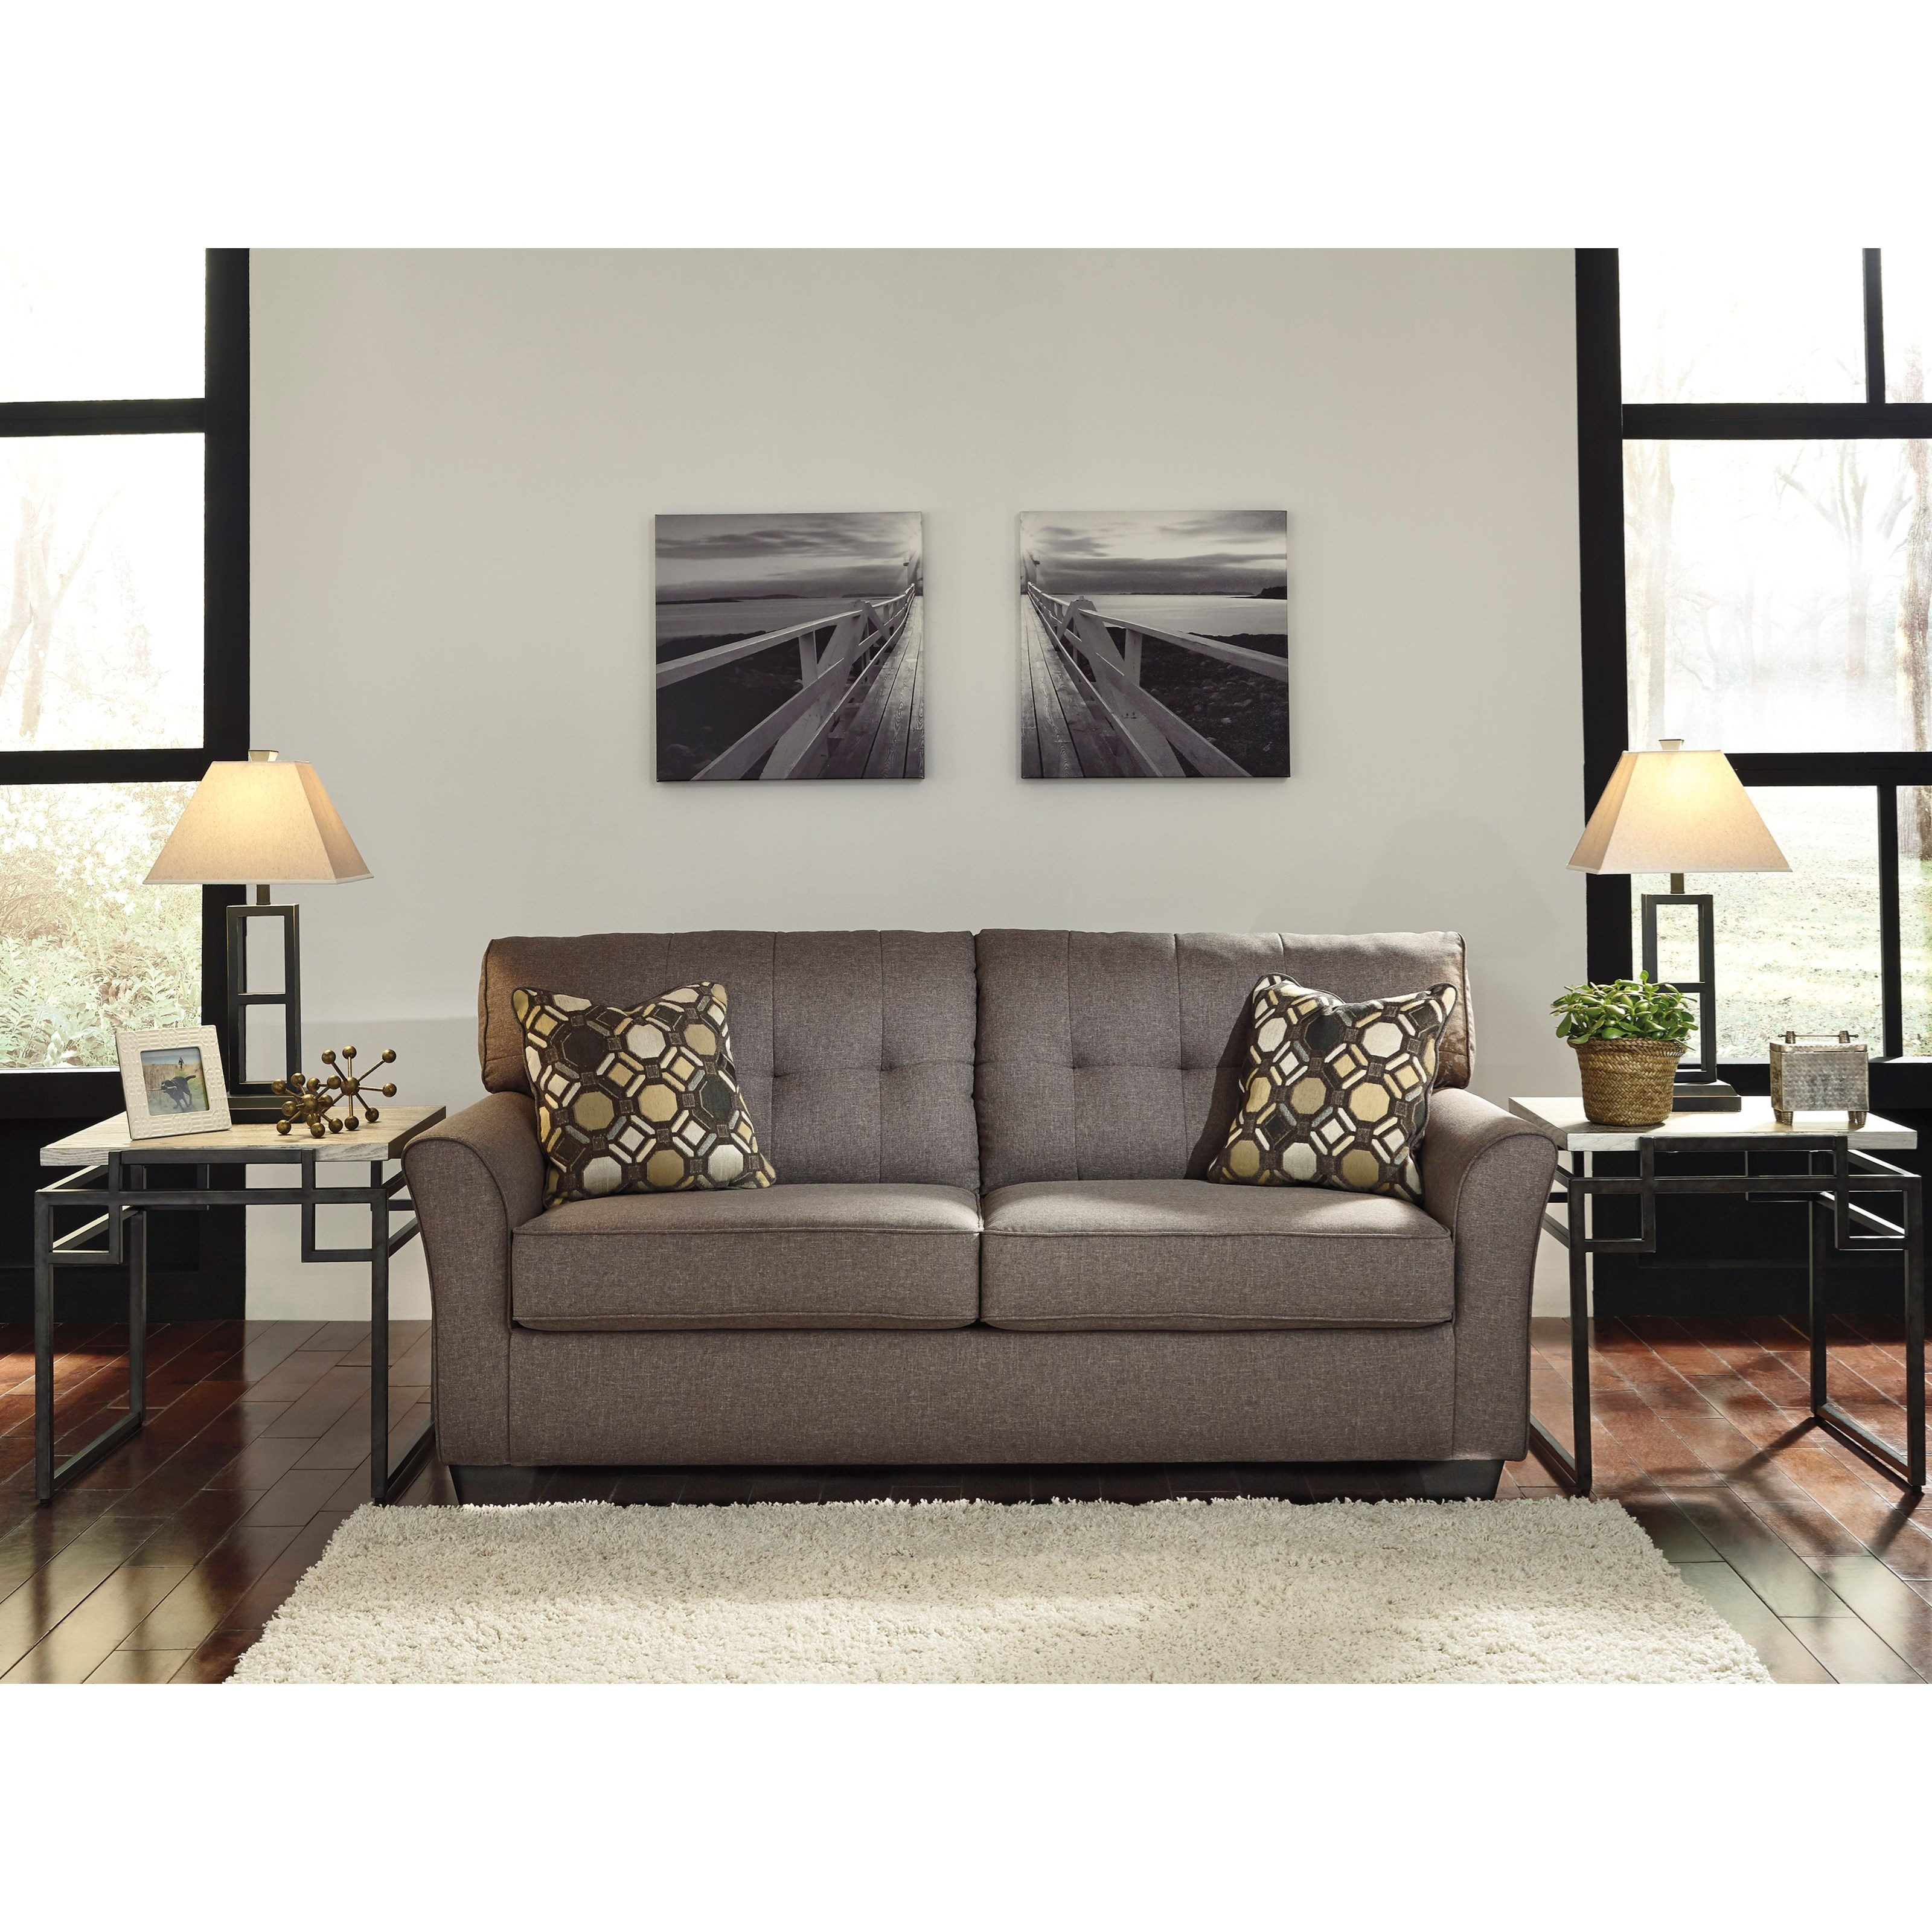 Signature design by ashley tibbee 9910136 contemporary for Signature design by ashley sofa